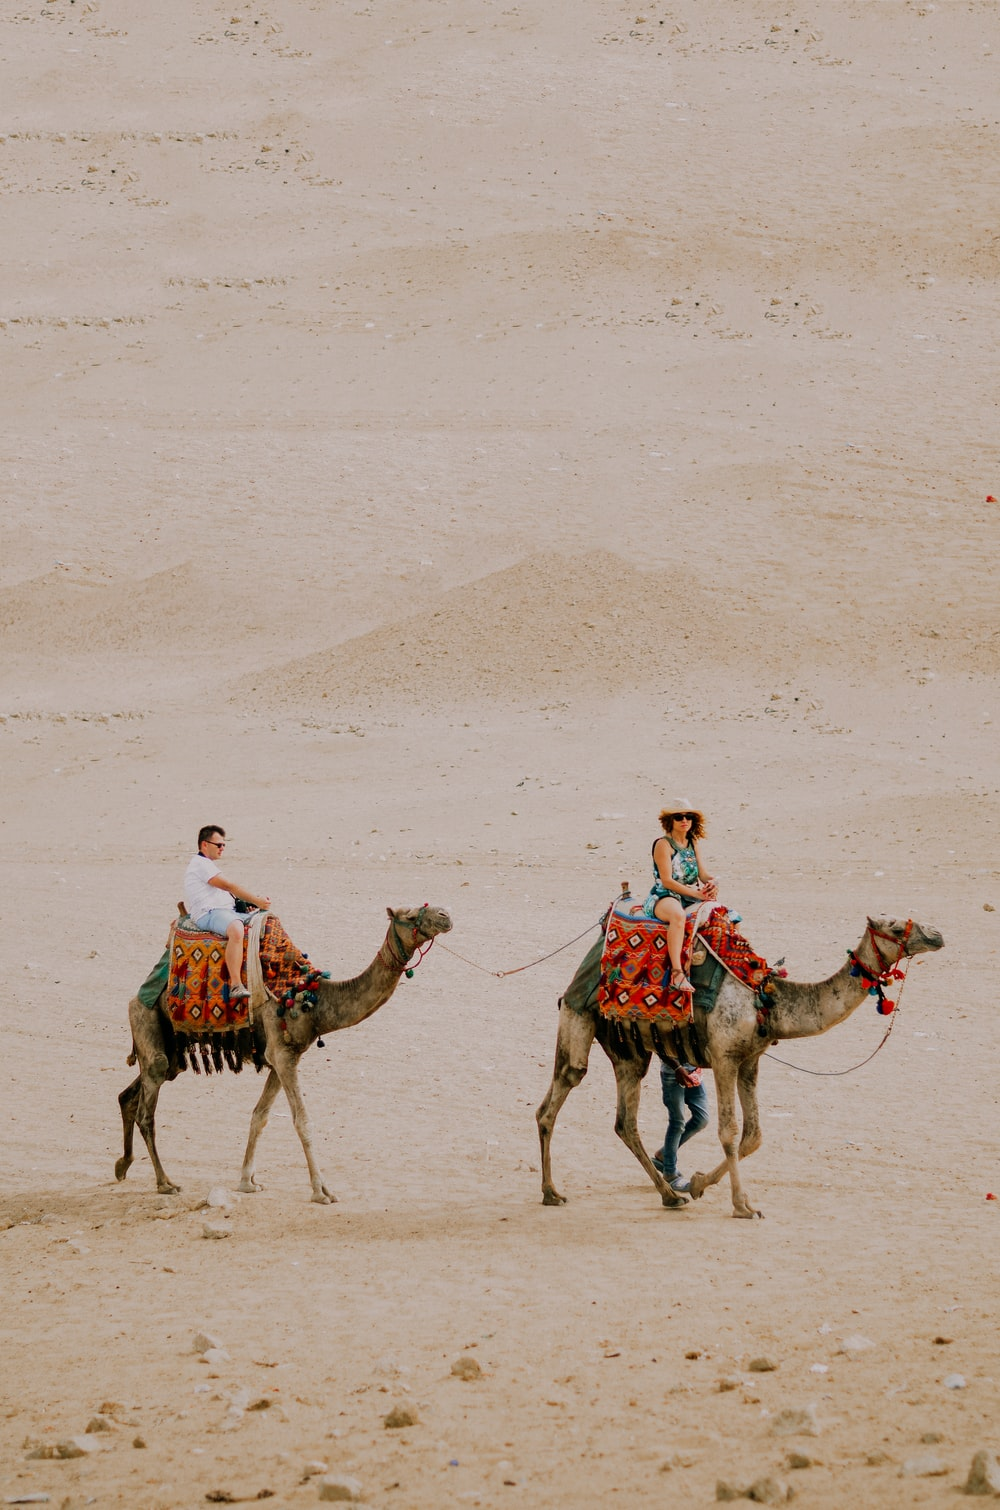 man and woman riding on camels